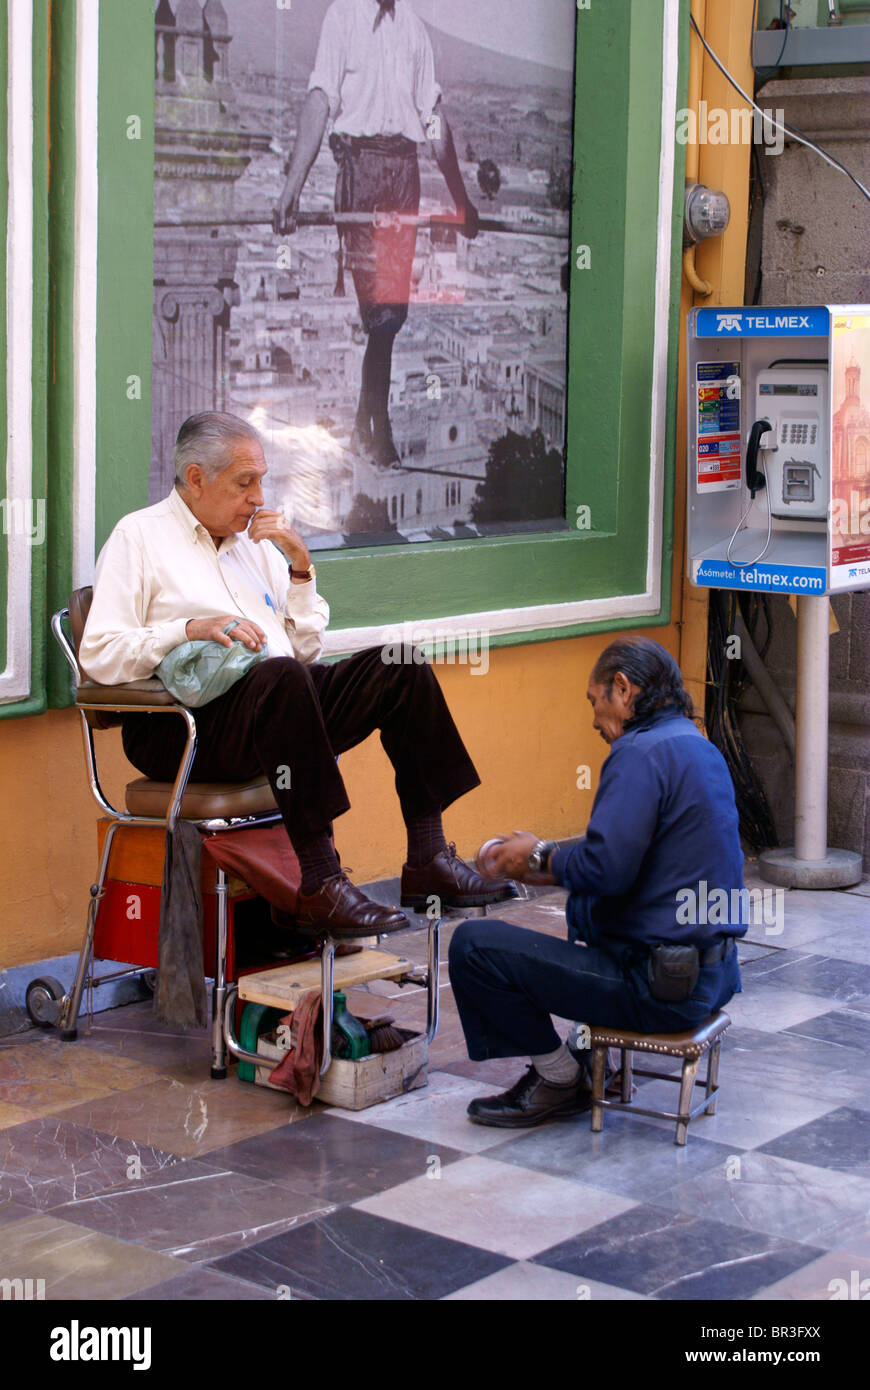 https://c8.alamy.com/comp/BR3FXX/elderly-man-getting-a-shoe-shine-in-the-city-of-puebla-mexico-BR3FXX.jpg